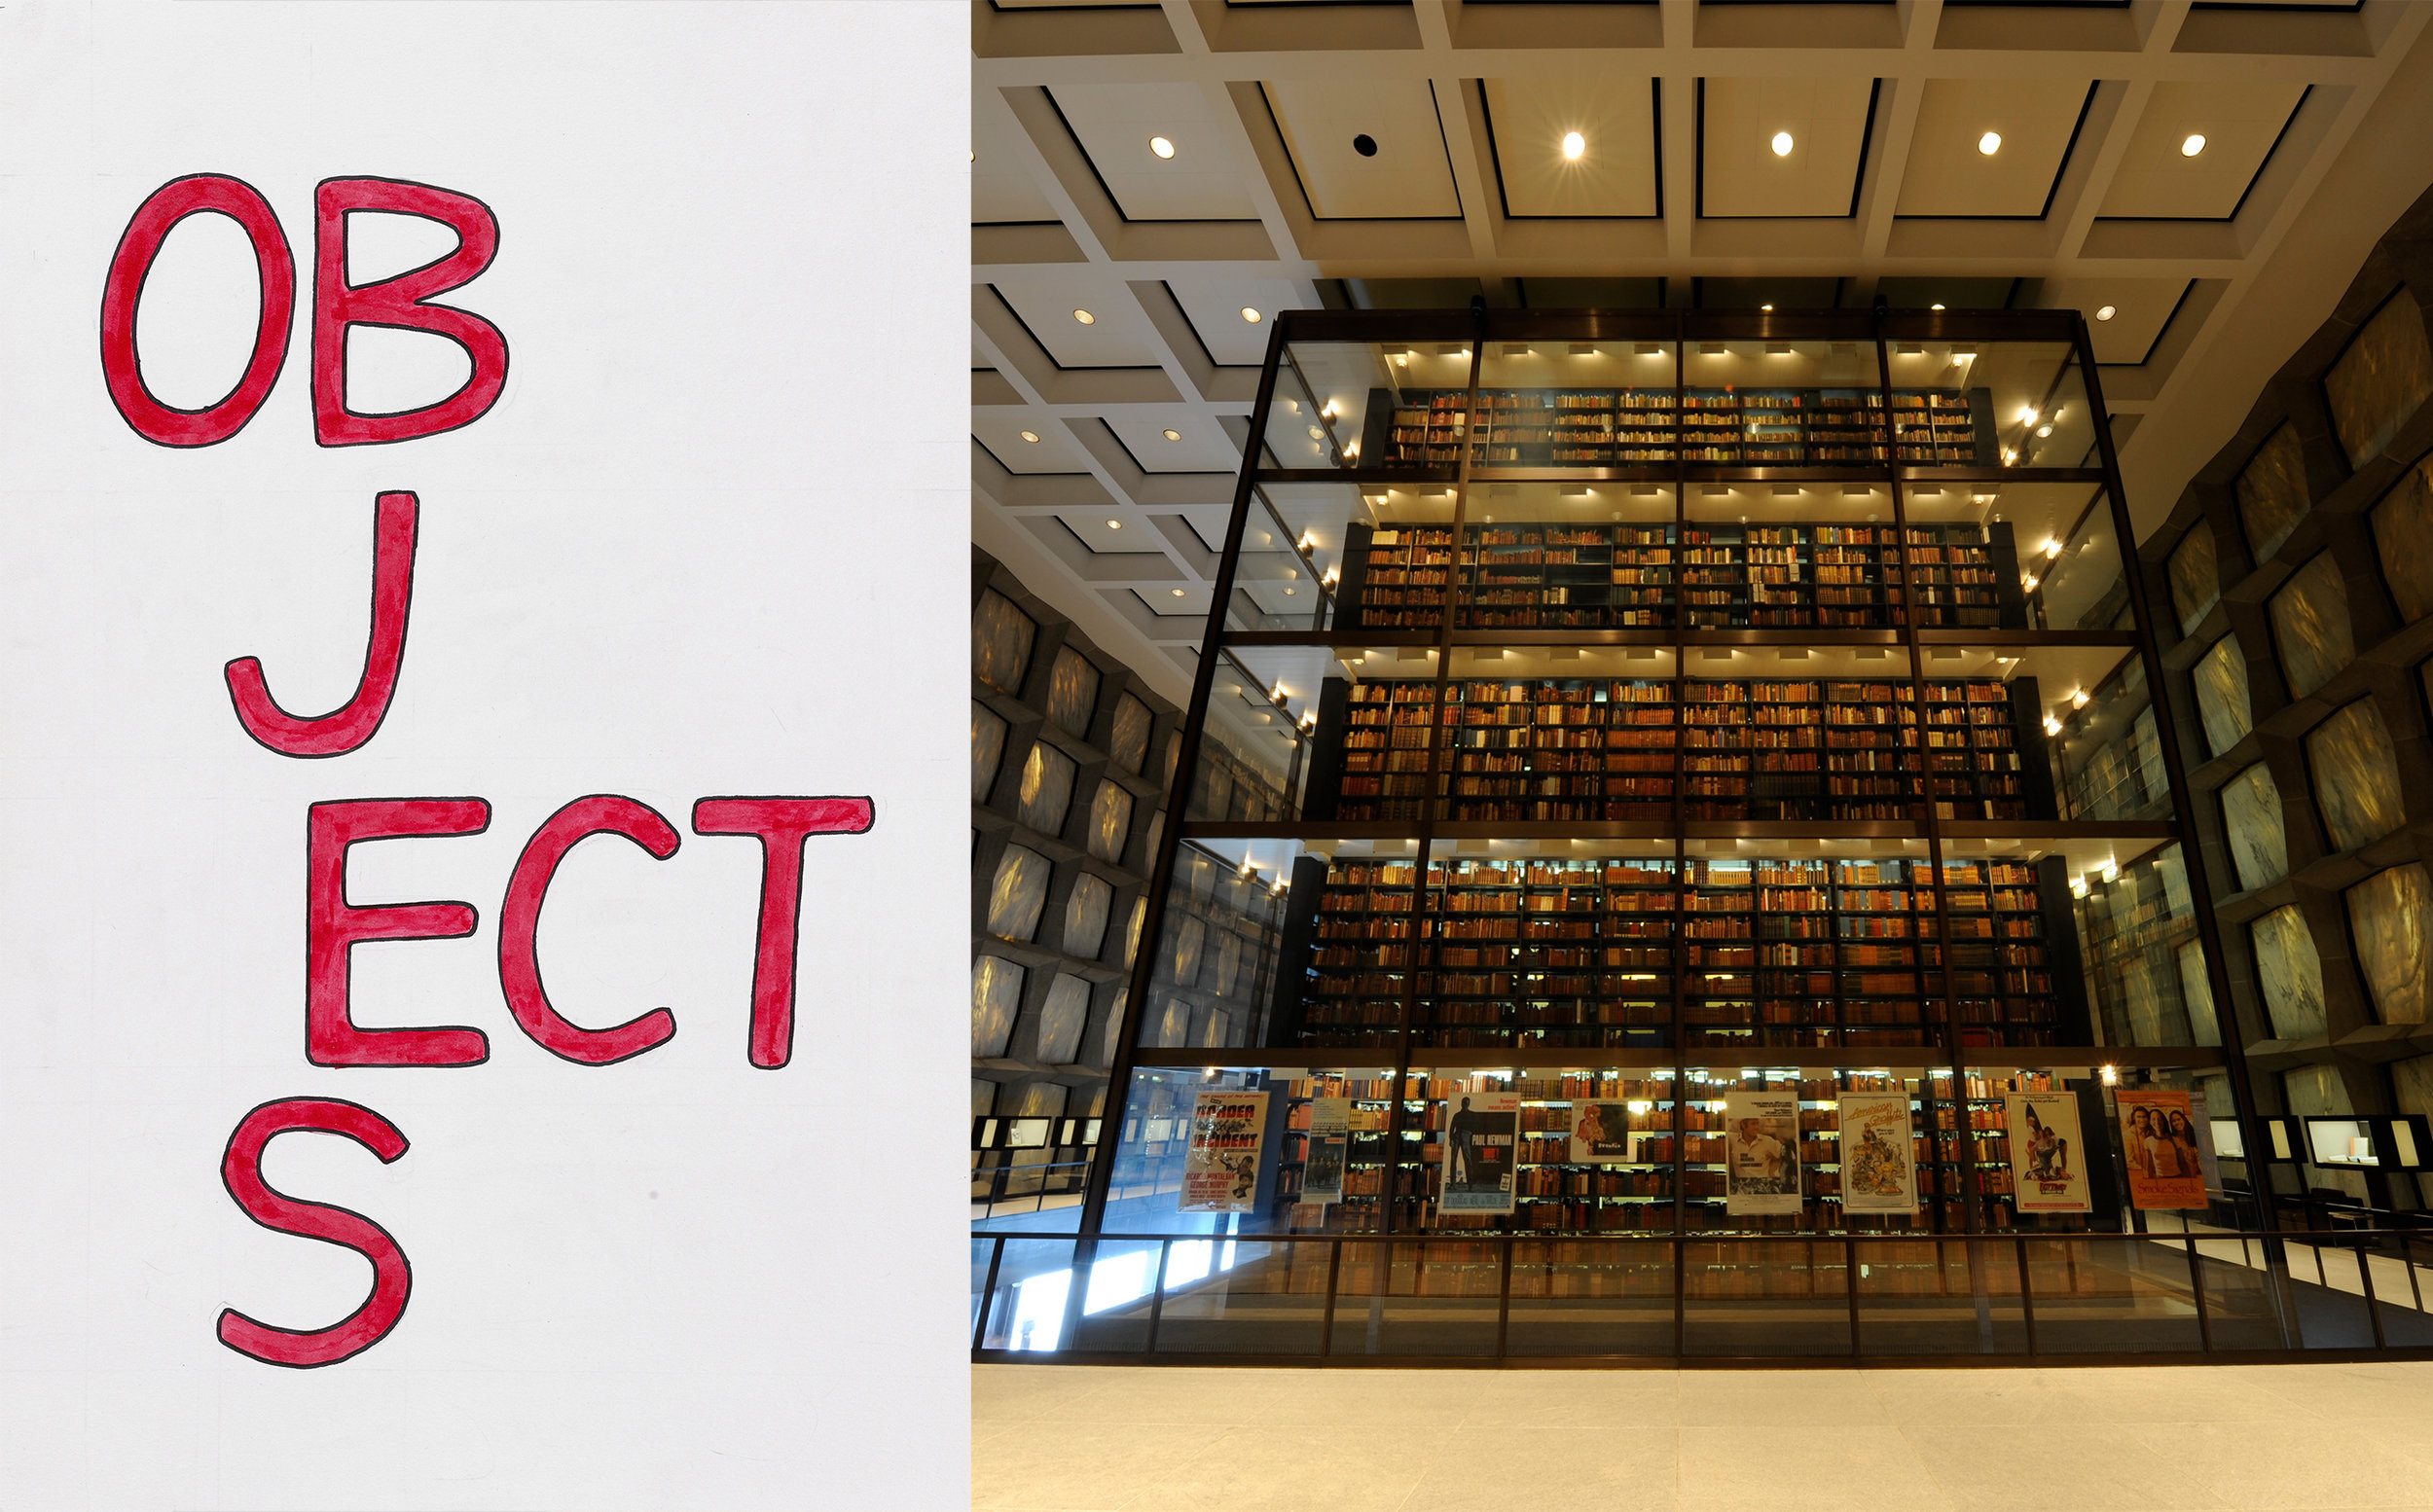 Logo for Tender Buttons: OBJECTS and interior shot of the Beinecke Rare Book & Manuscript Library. Photo credit: Beinecke Digital Studio.